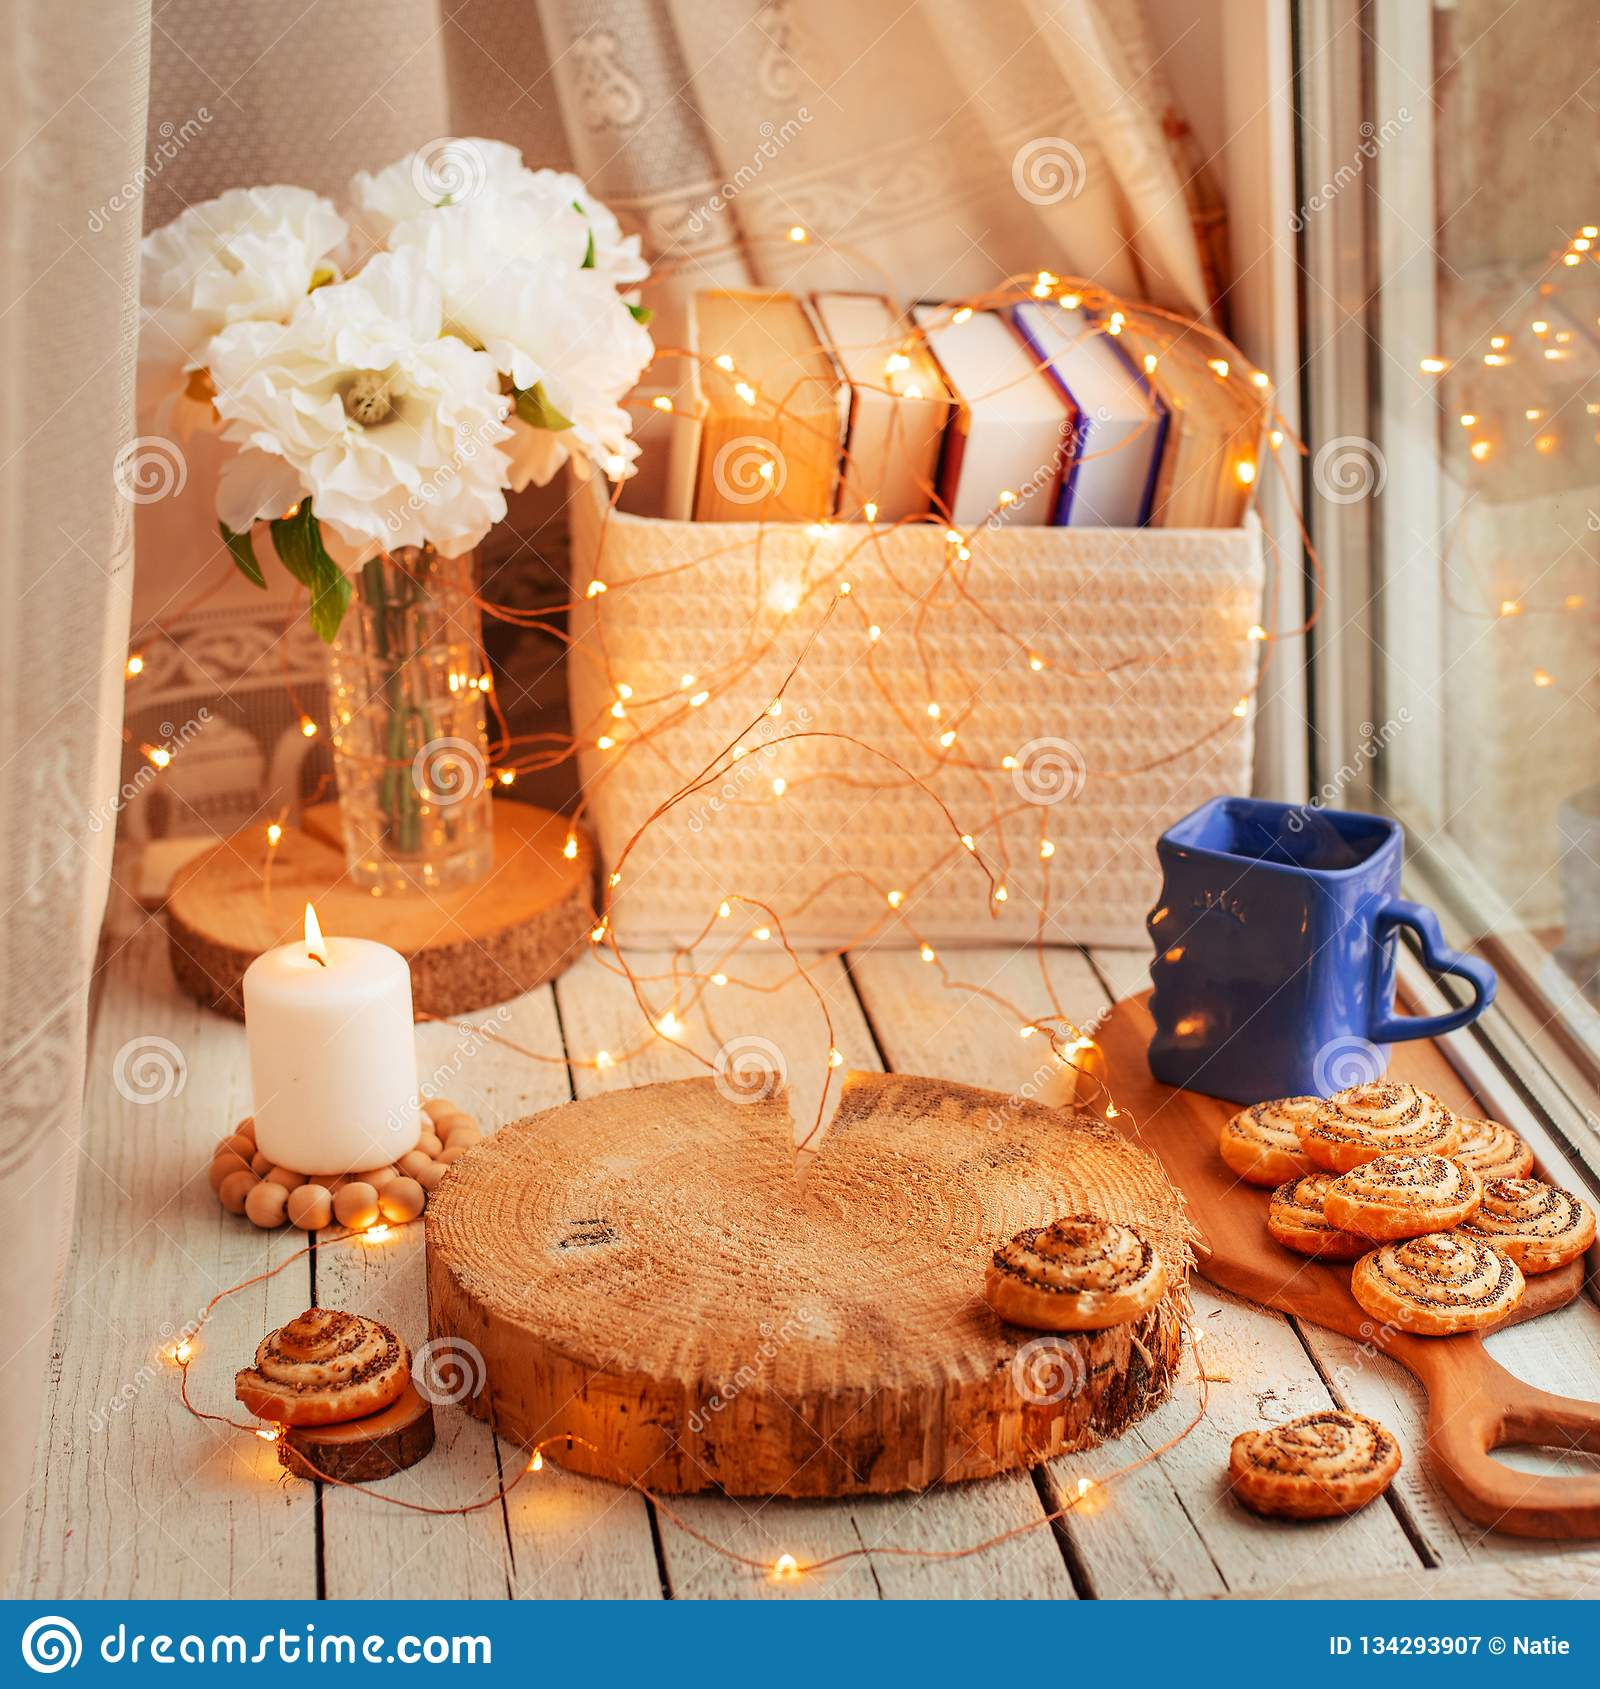 Cozy home background